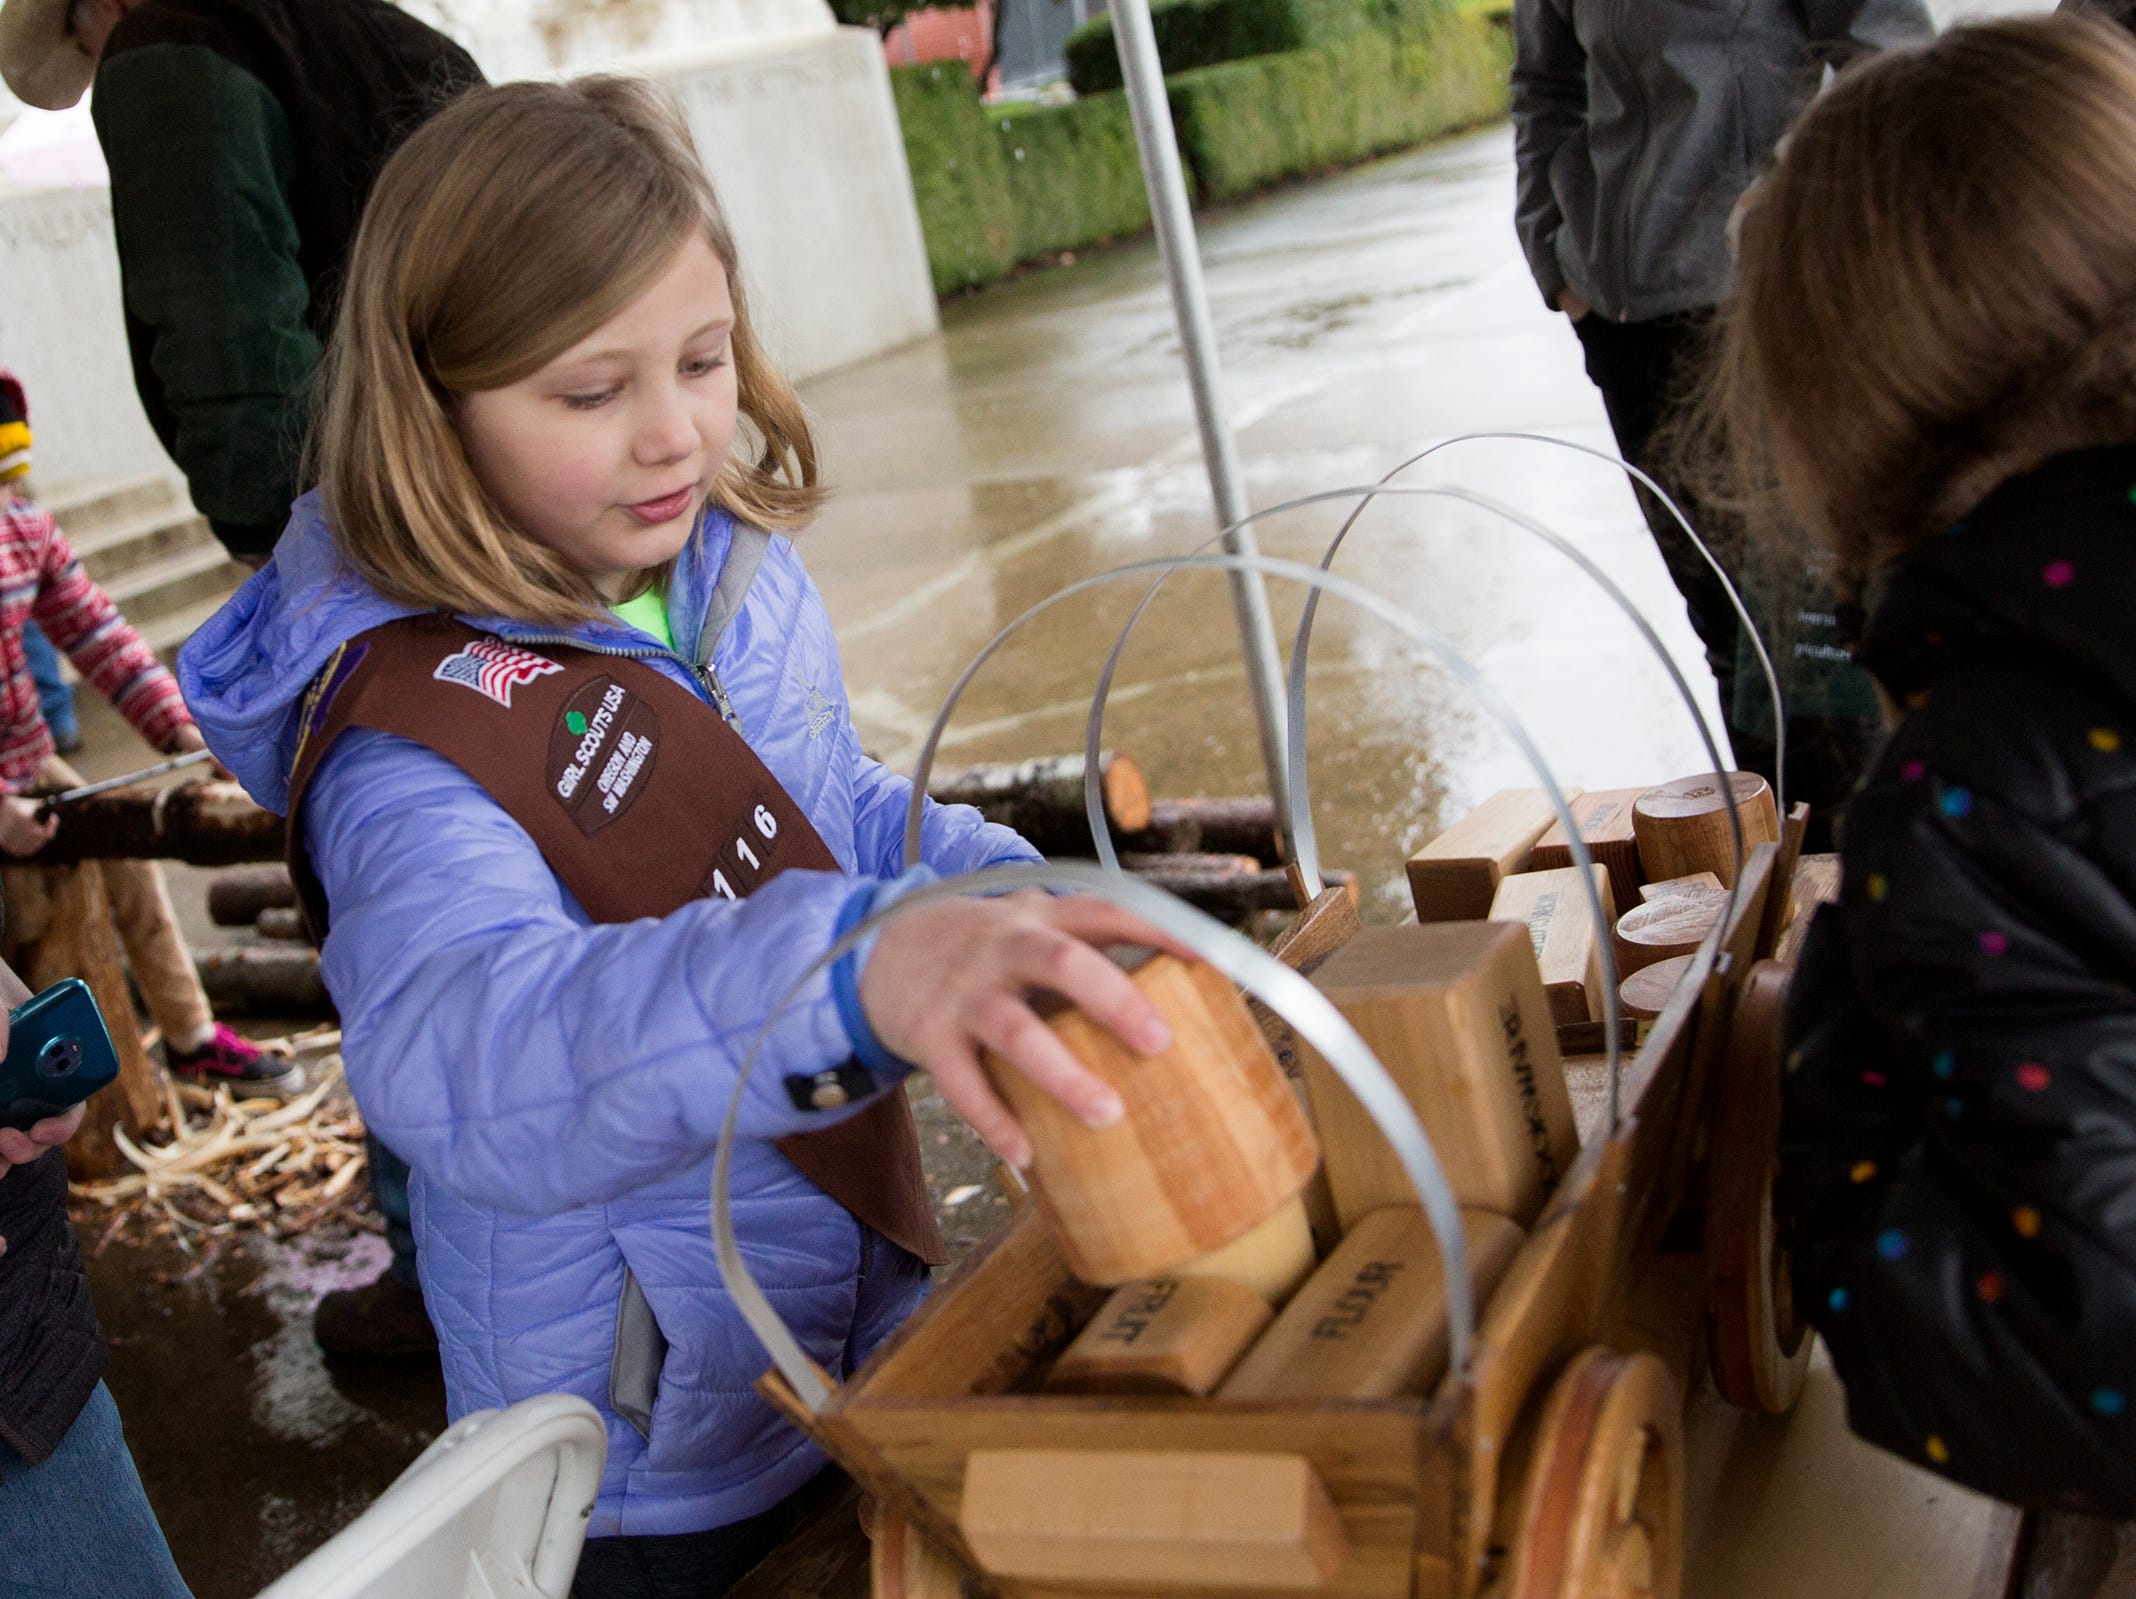 Girl Scout Brinleigh Grinberg stacks blocks representing food items and personal belongings in a toy wagon provided by the Yamhill Valley Heritage Center during Oregon's 160th Birthday Celebration at the Oregon State Capitol in Salem on Saturday, Feb. 16, 2019.